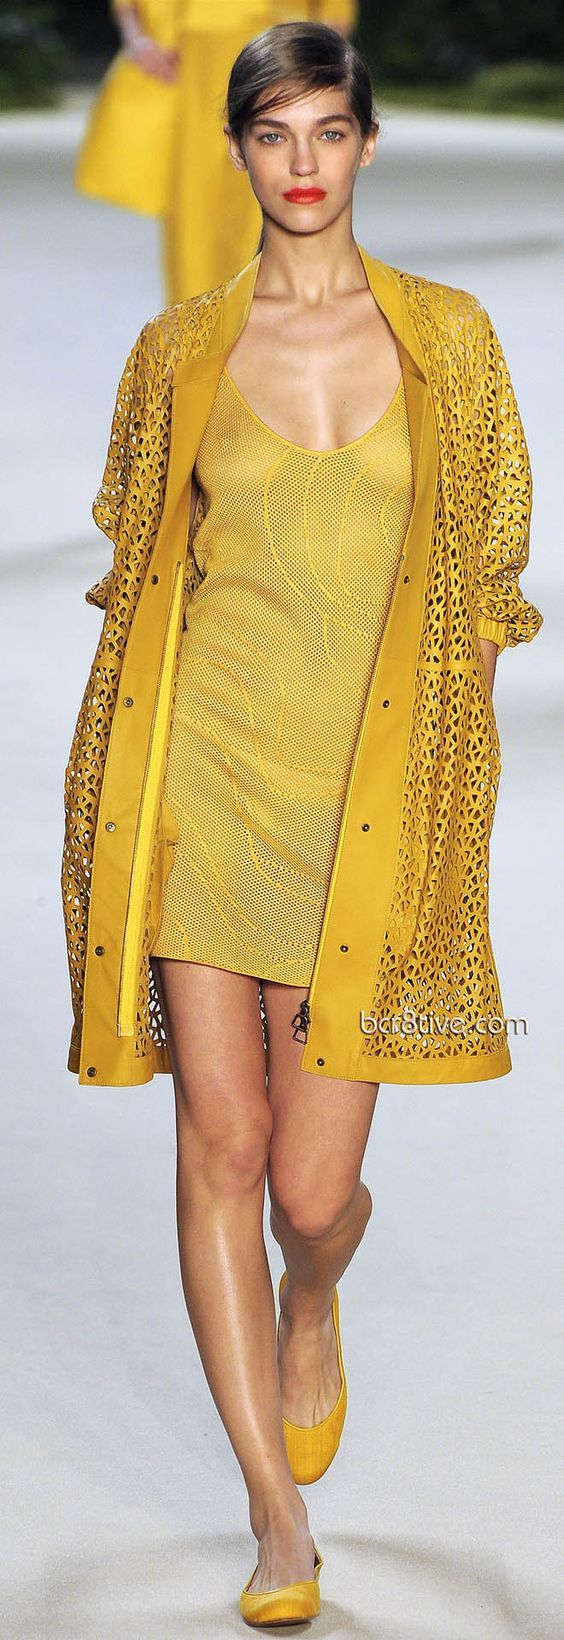 yellow dress, jacket @roressclothes closet ideas women fashion outfit clothing style Akris Spring Summer 2013 Ready To Wear: